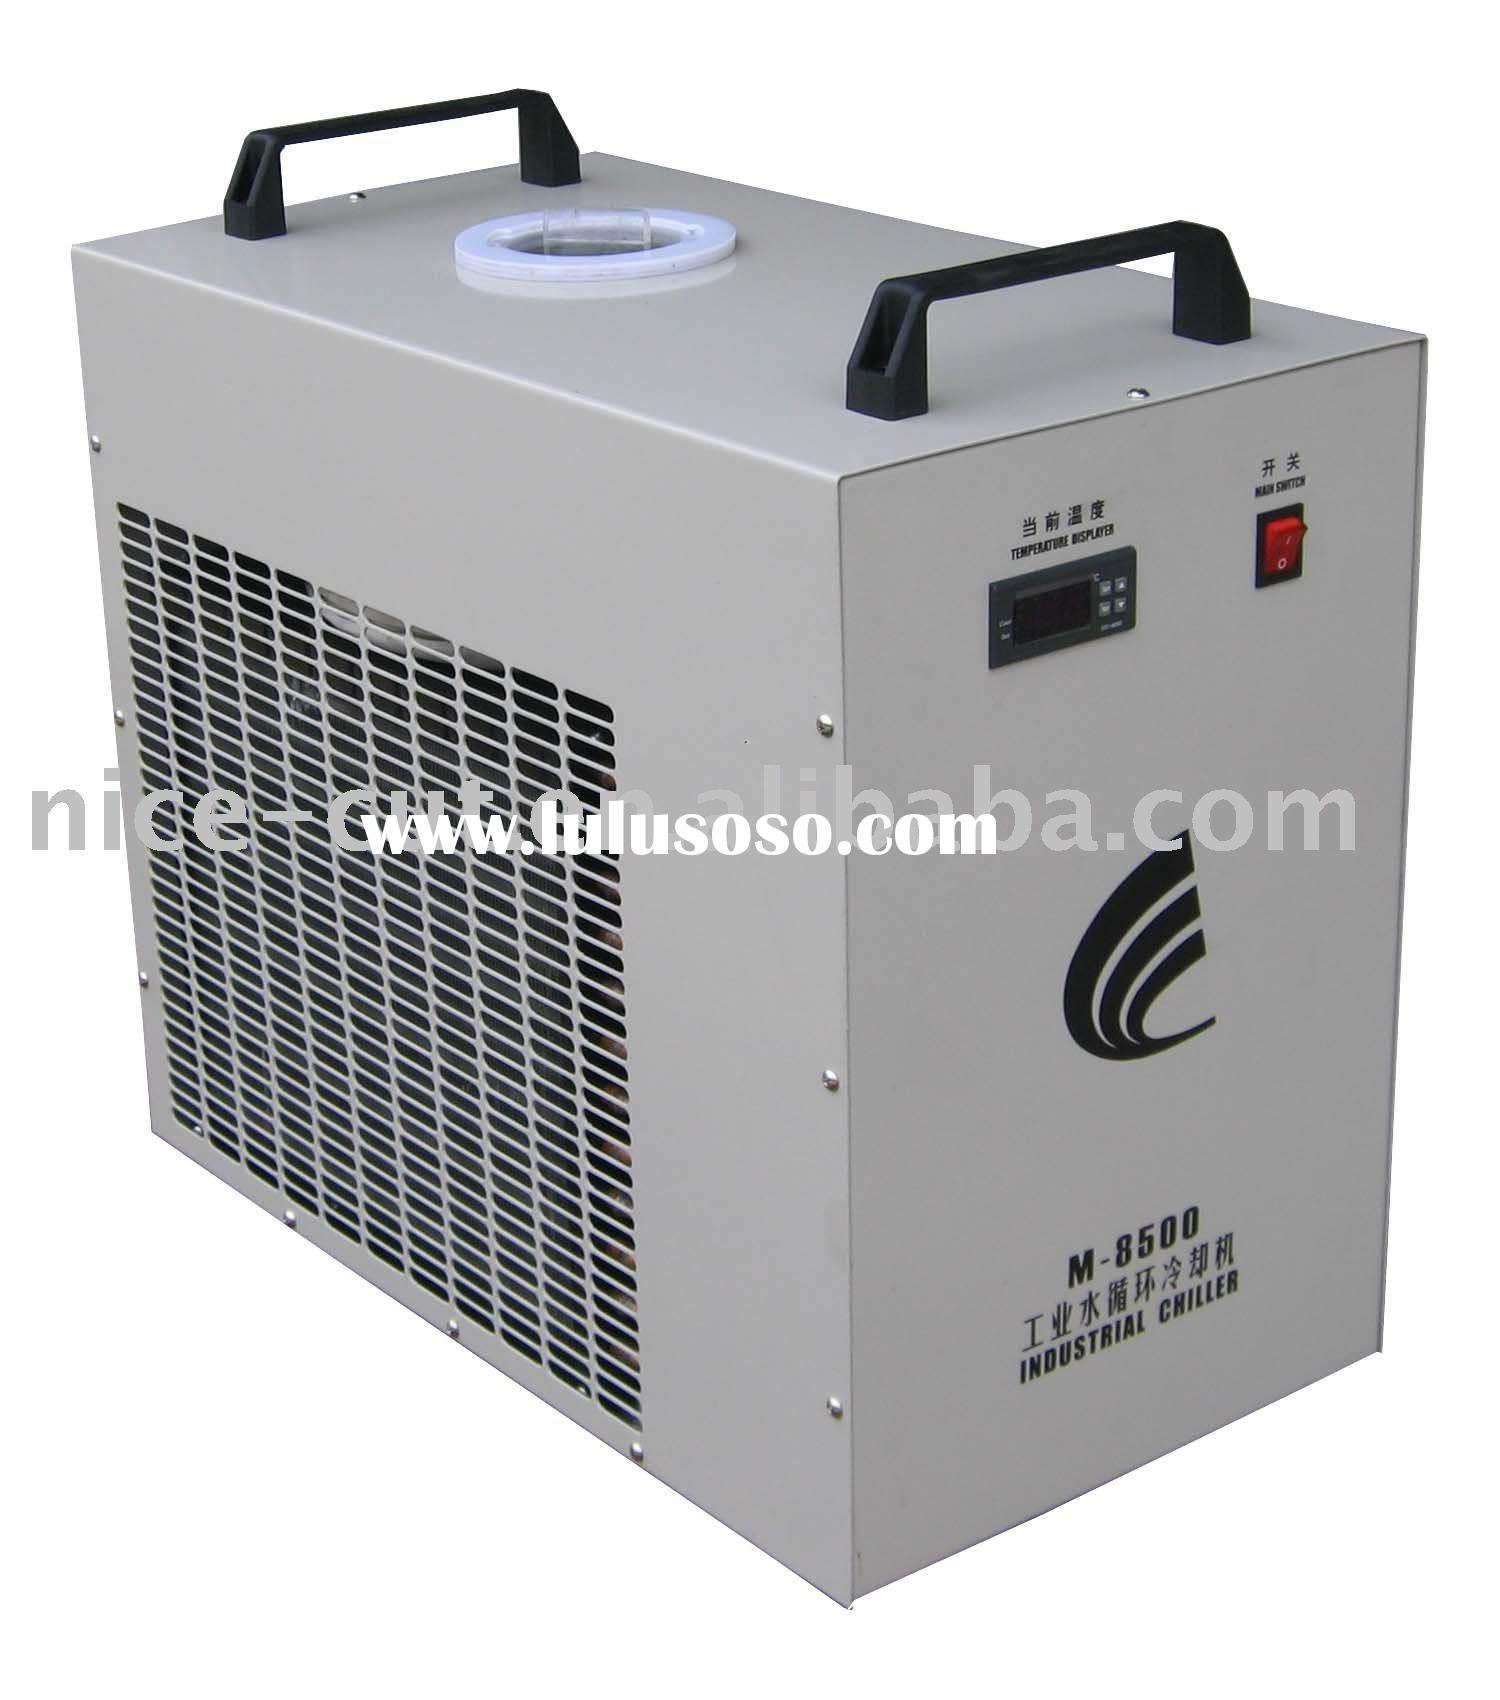 water chiller for laser machine water chiller for laser machine  #494B5D